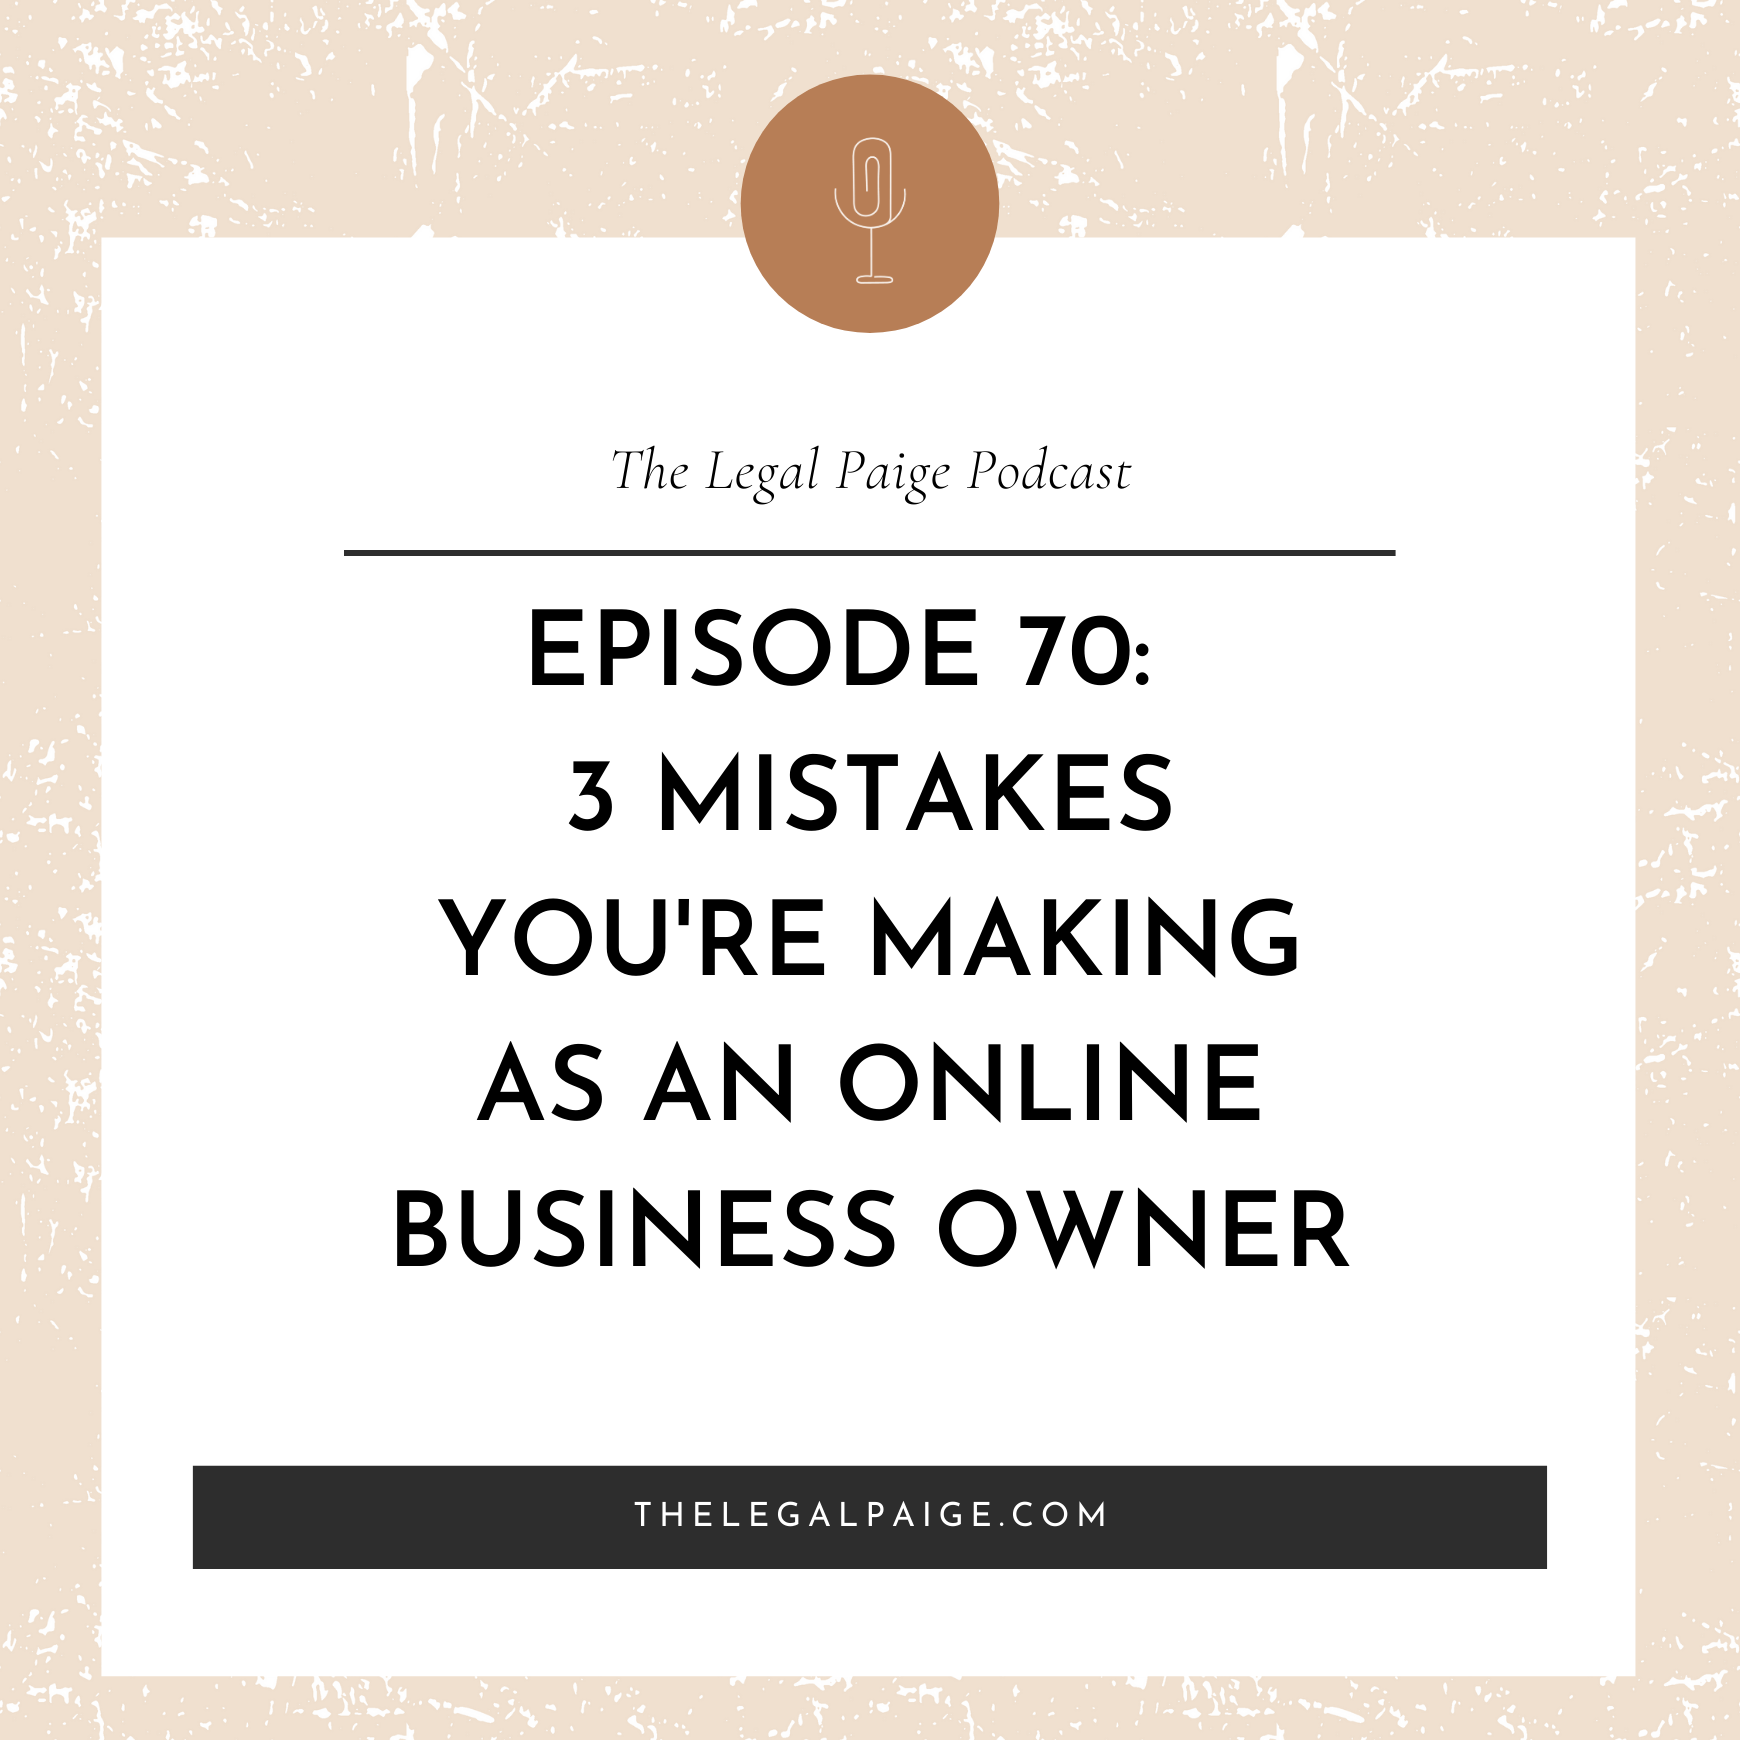 Ep 70: 3 Mistakes You're Making As An Online Business Owner